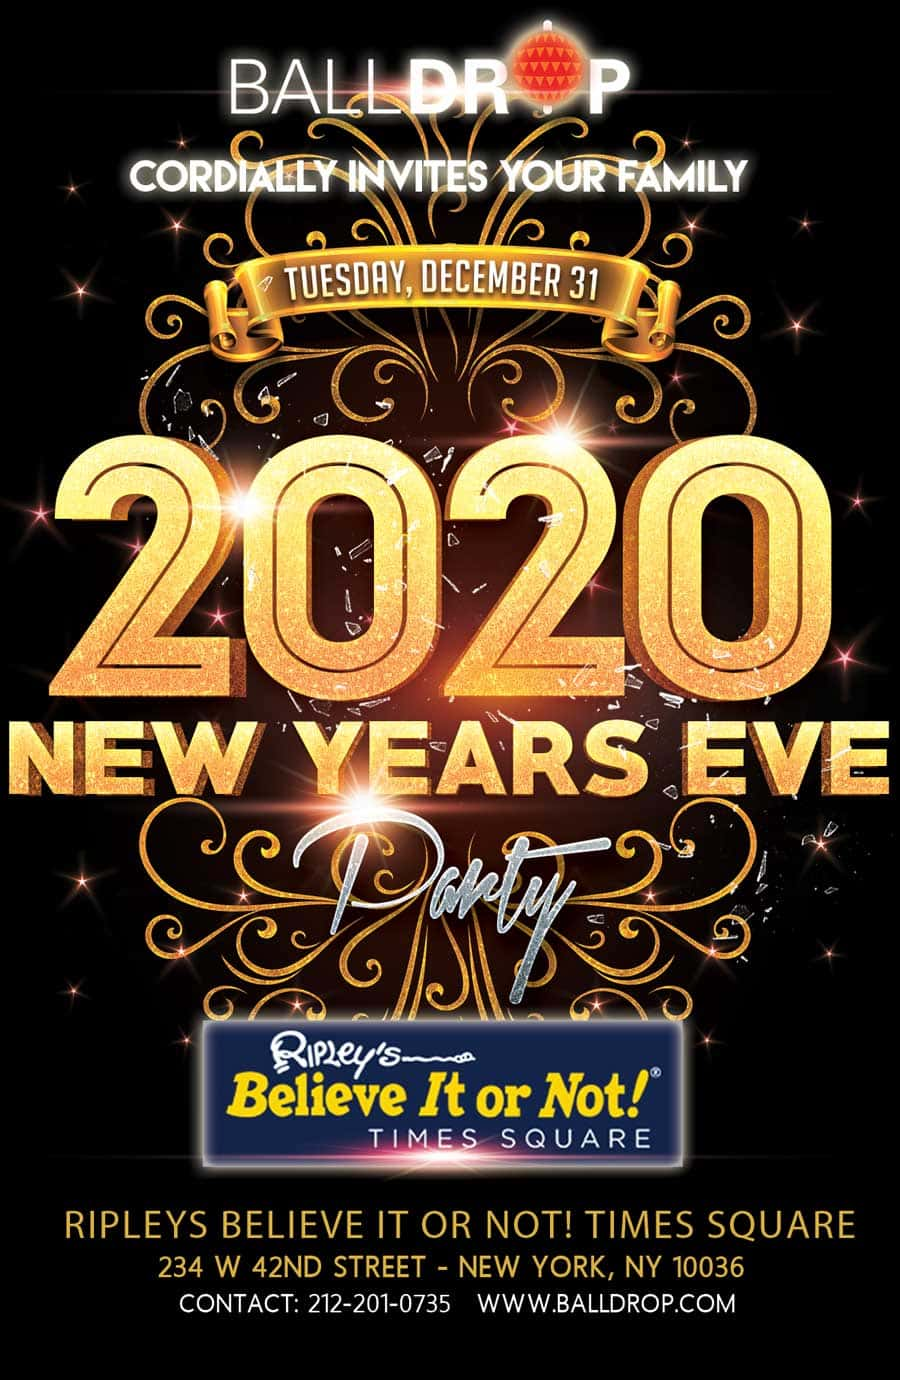 Ripley's Believe It Or Not Times Square New Years Eve 2022